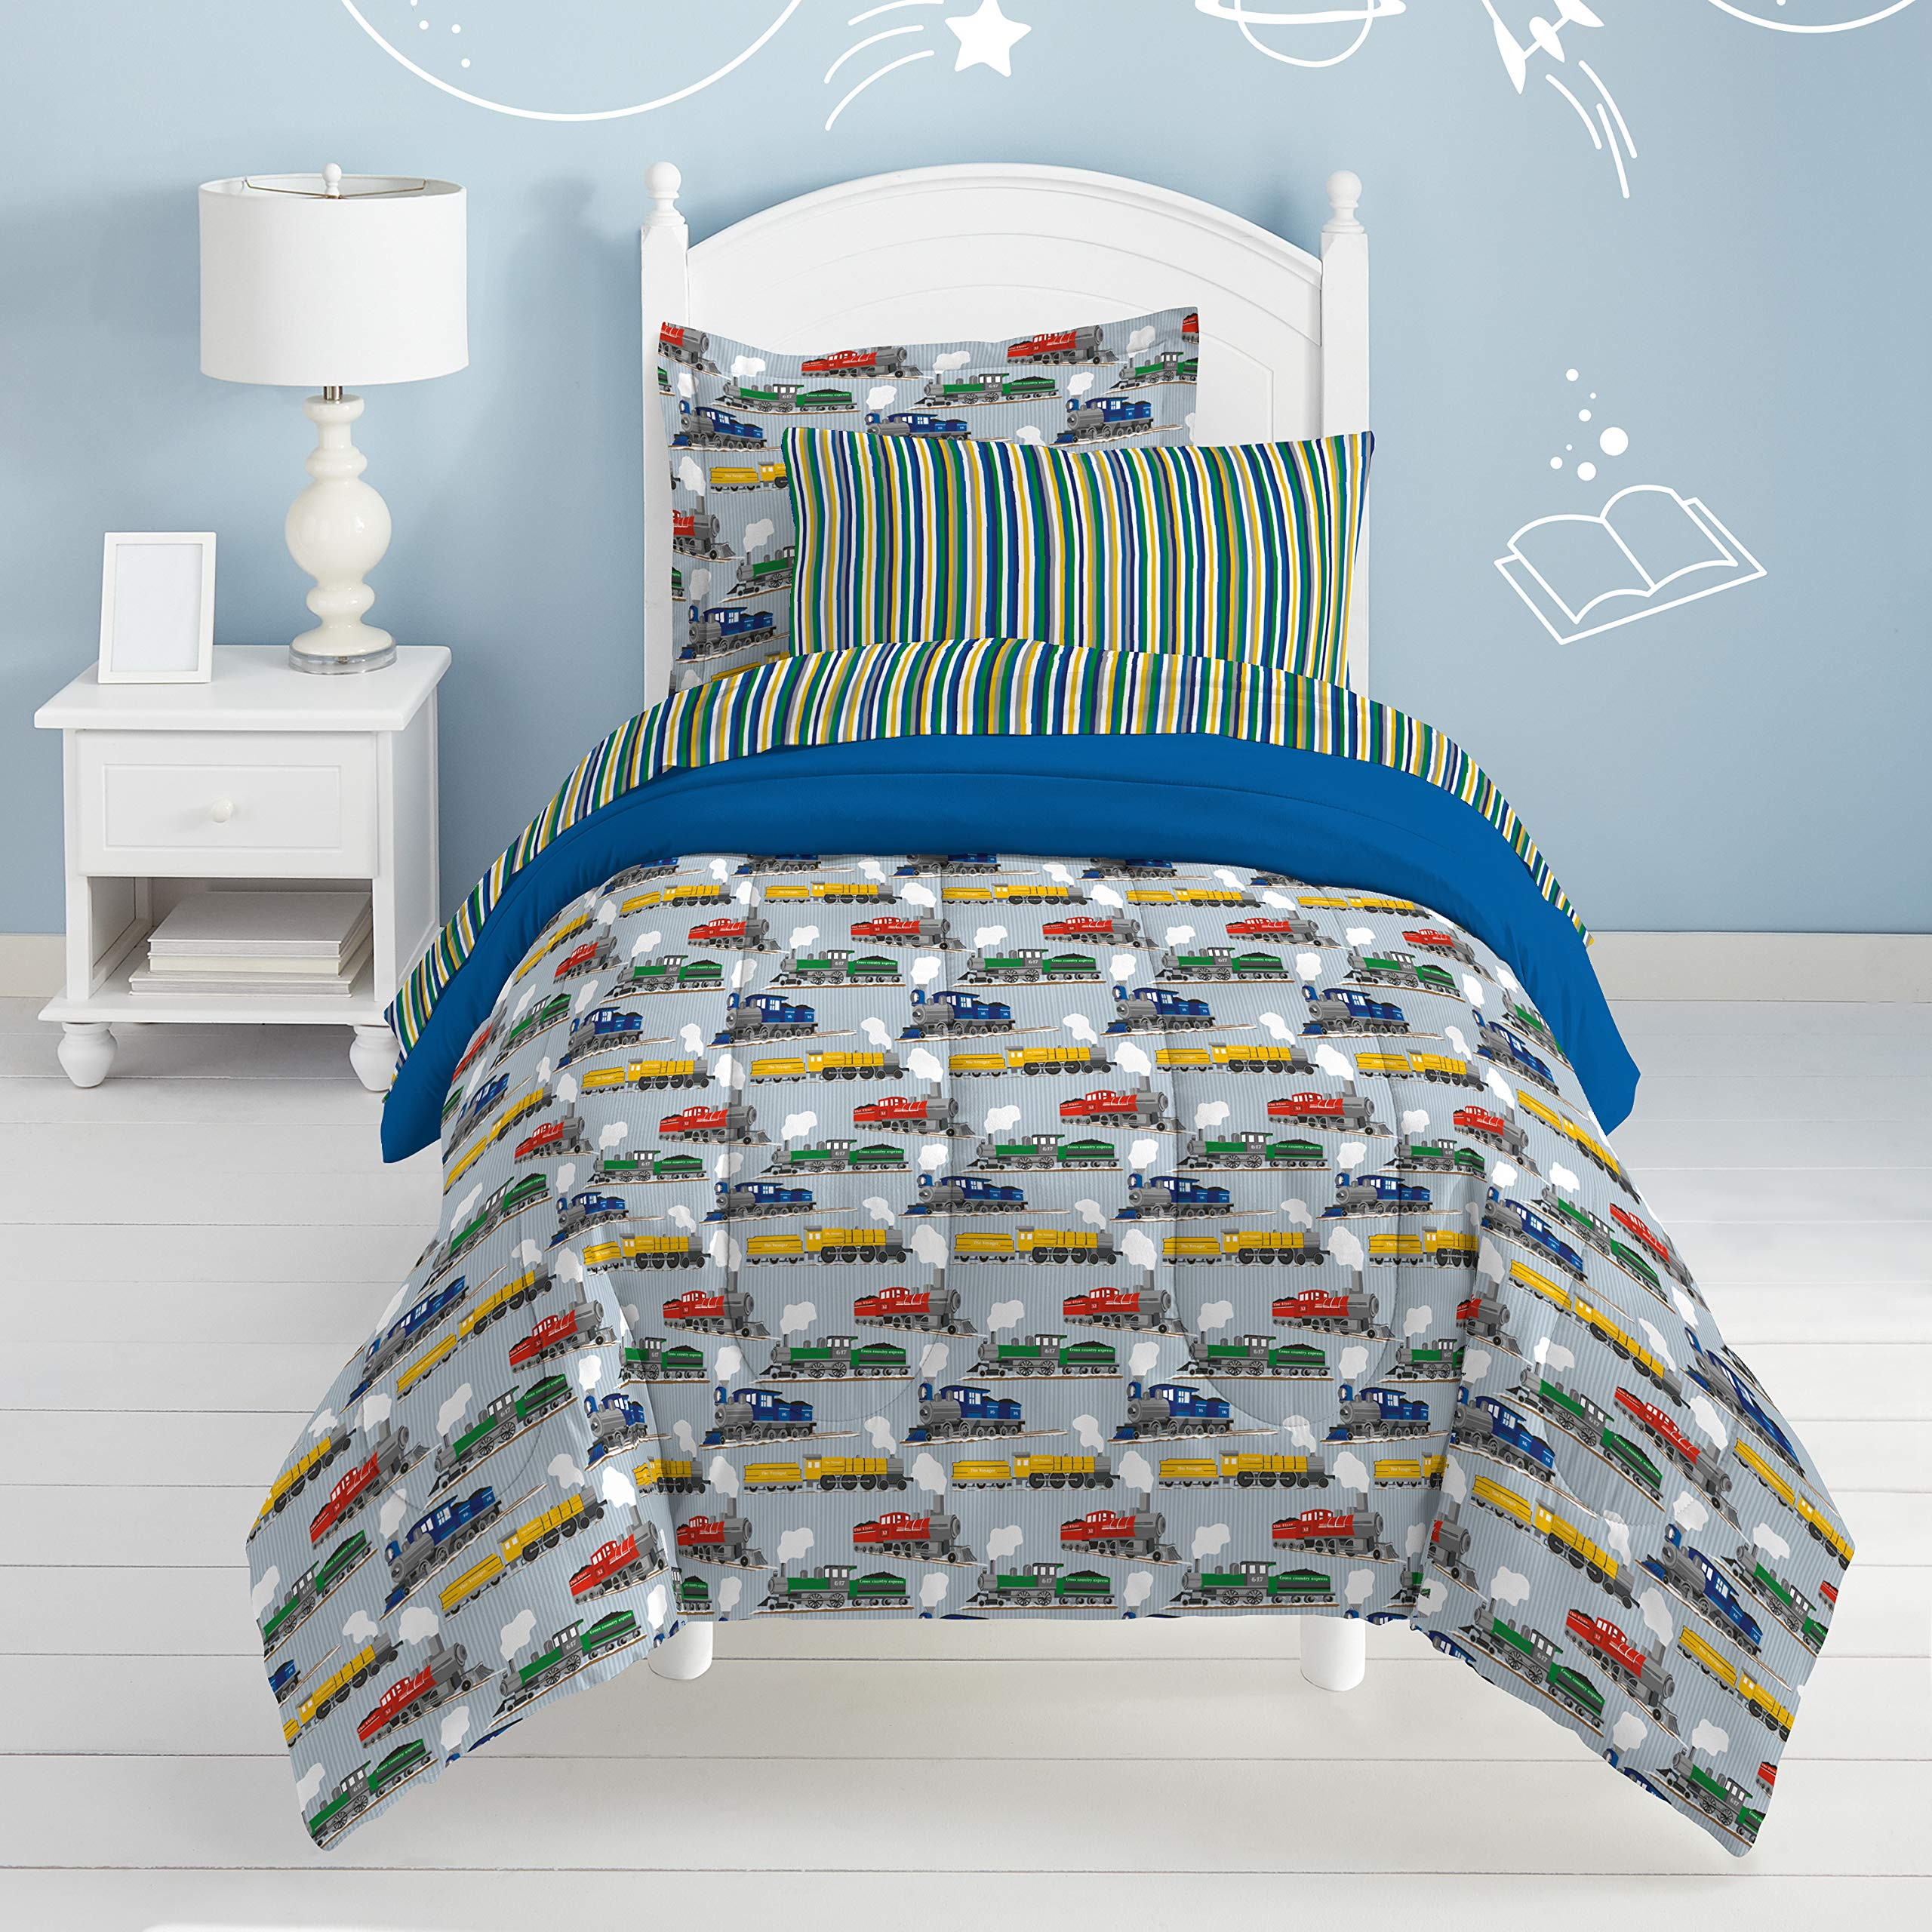 Dream Factory Trains Ultra Soft Microfiber Boys Comforter Set, Blue, Full by Dream Factory (Image #3)